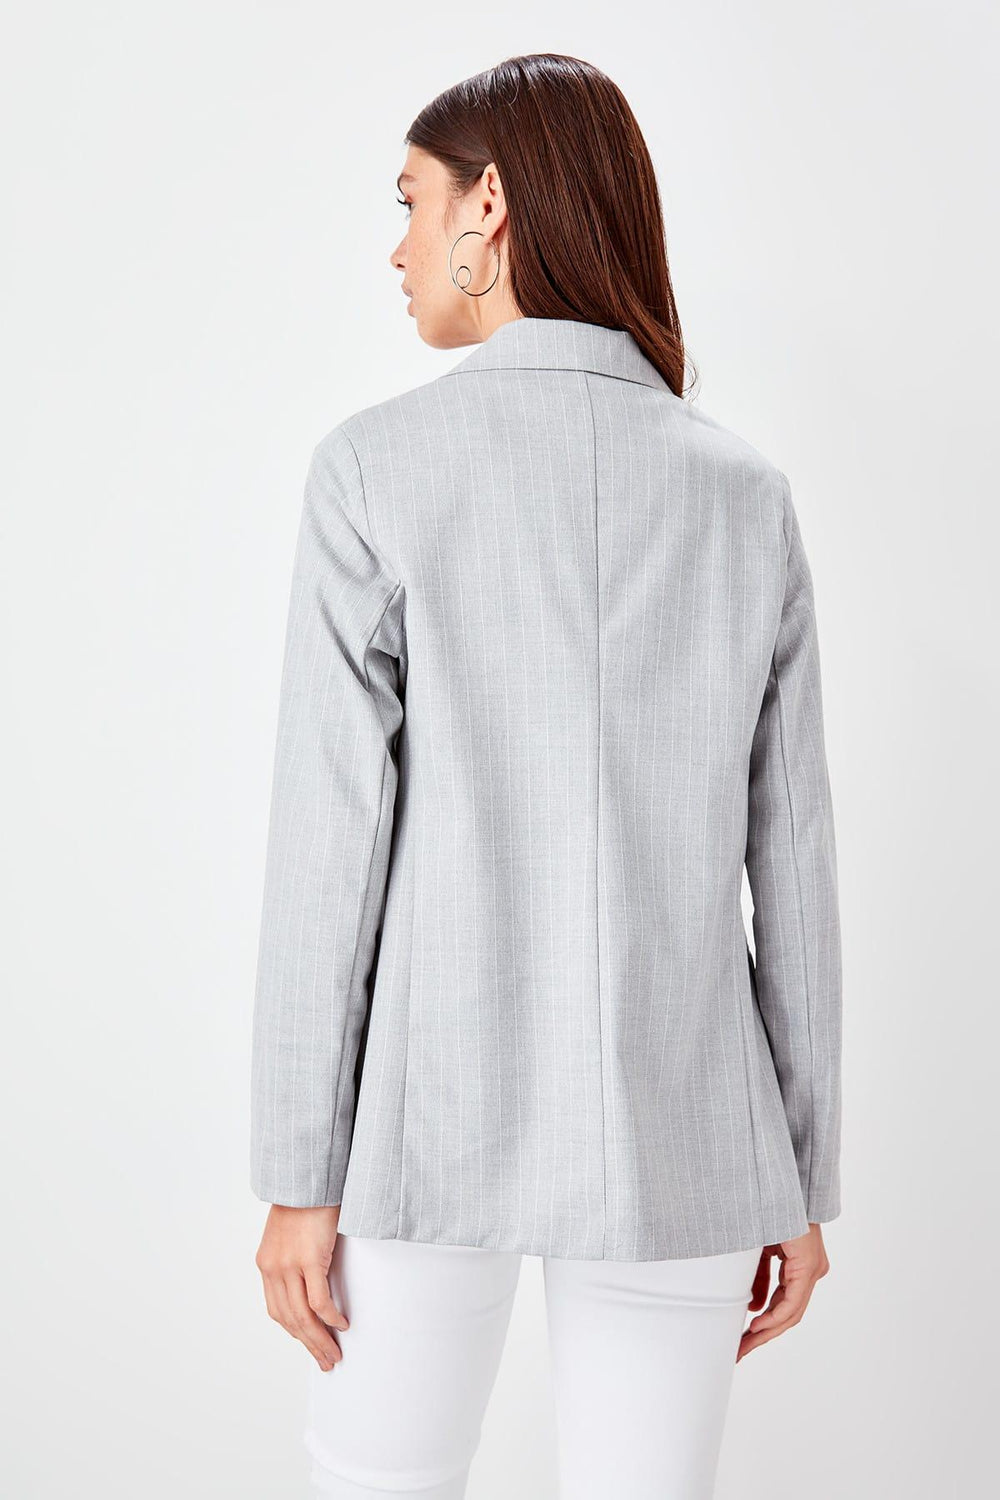 Gray Striped Jacket - Top Maxy